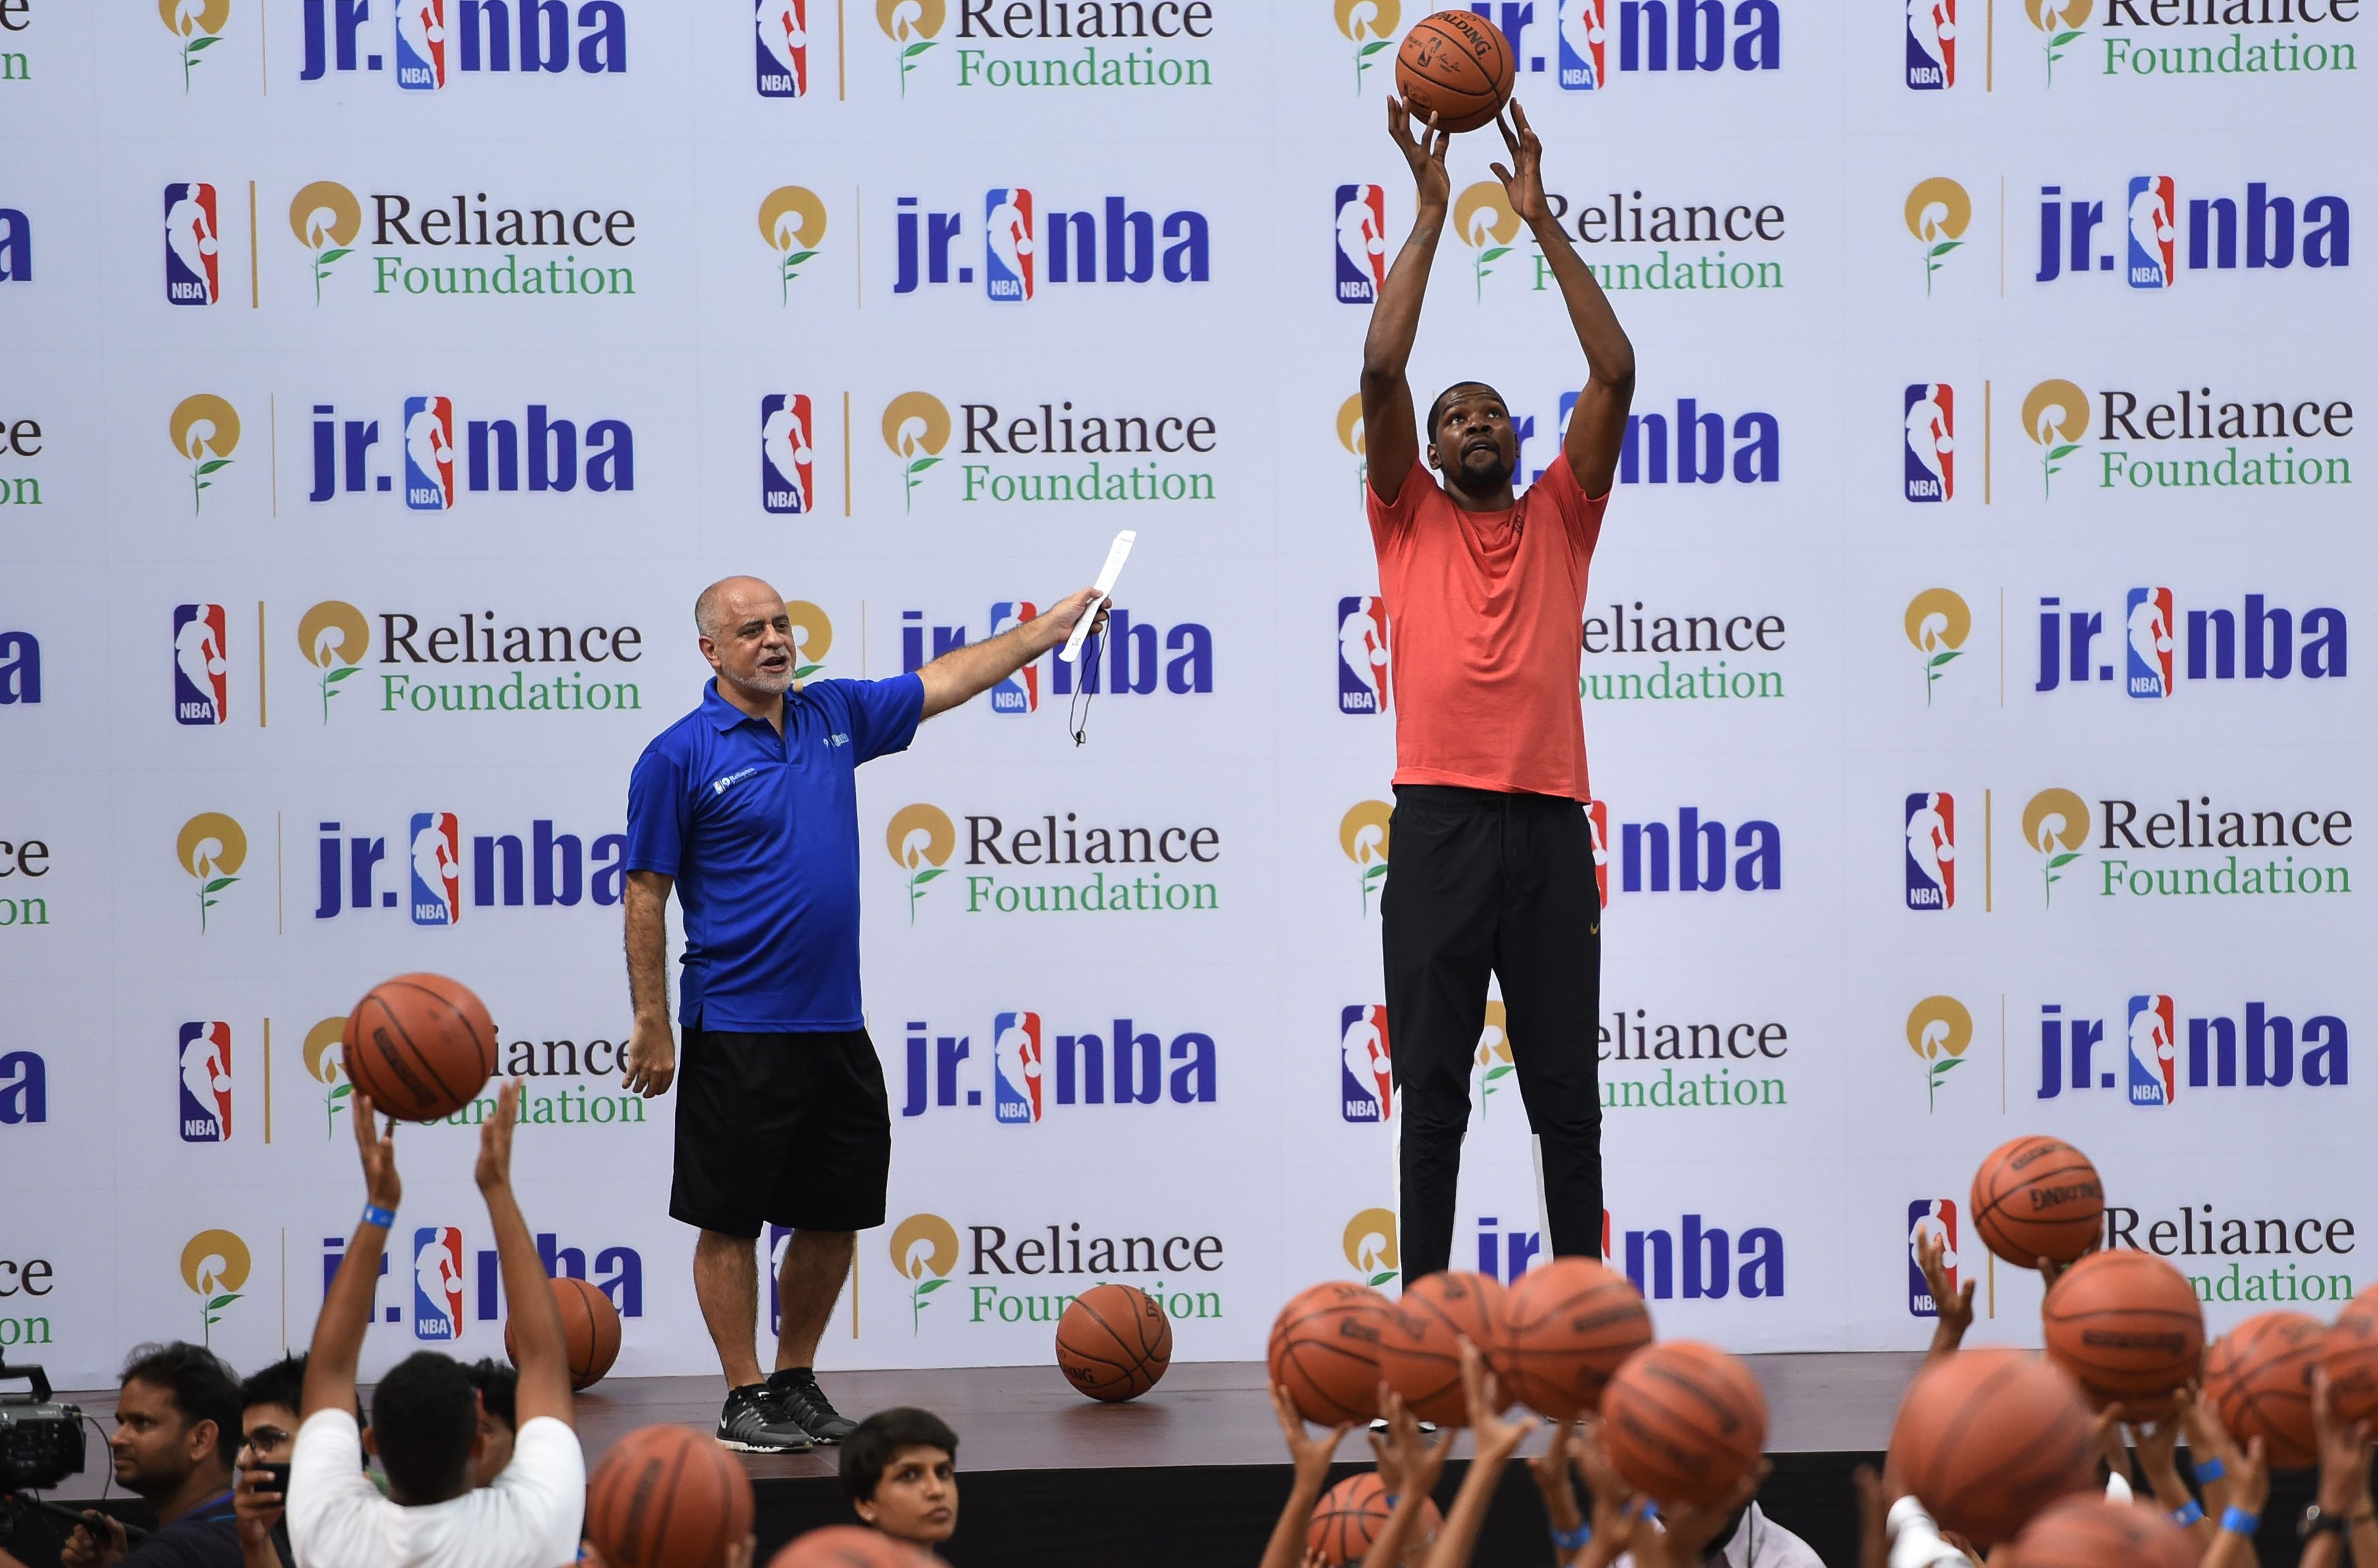 American basketball player for Golden State Warriors Kevin Durant (R) gives tips to children during an event at the NBA academy in Greater Noida, a suburb of New Delhi on July 28, 2017. / AFP PHOTO / MONEY SHARMA